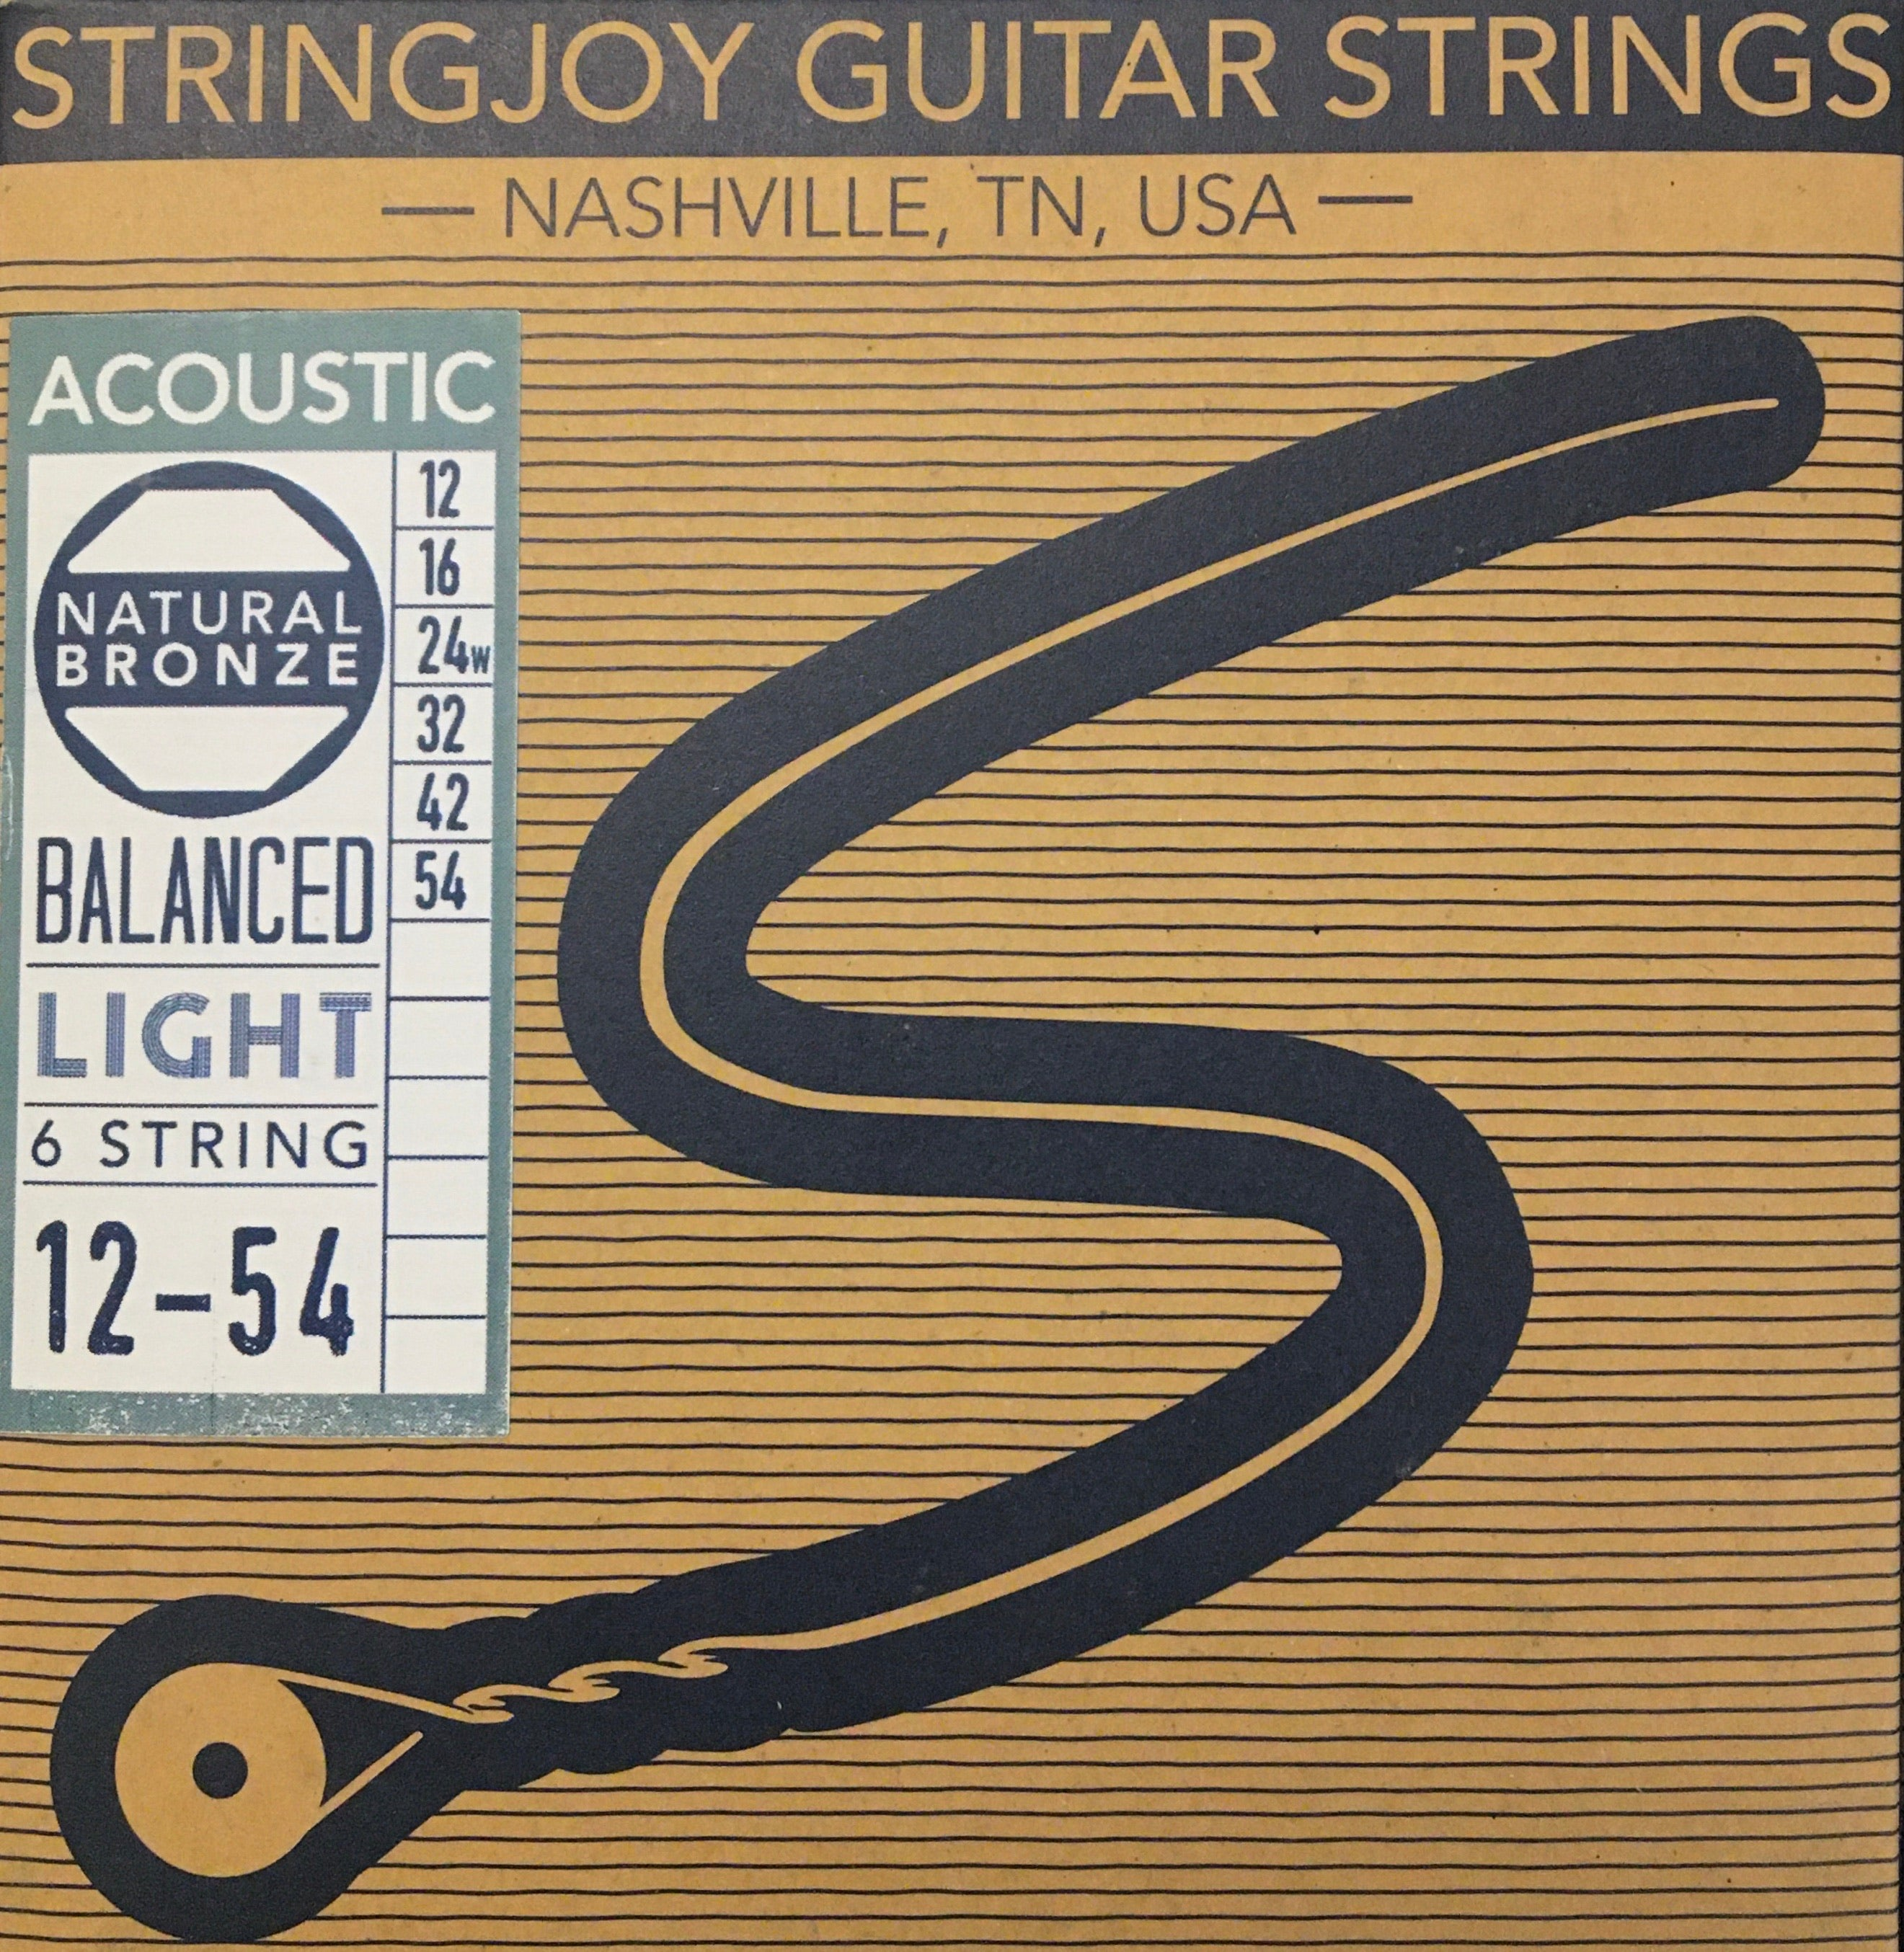 StringJoy Natural Phosphor Bronze Acoustic Guitar Strings, Balanced Light